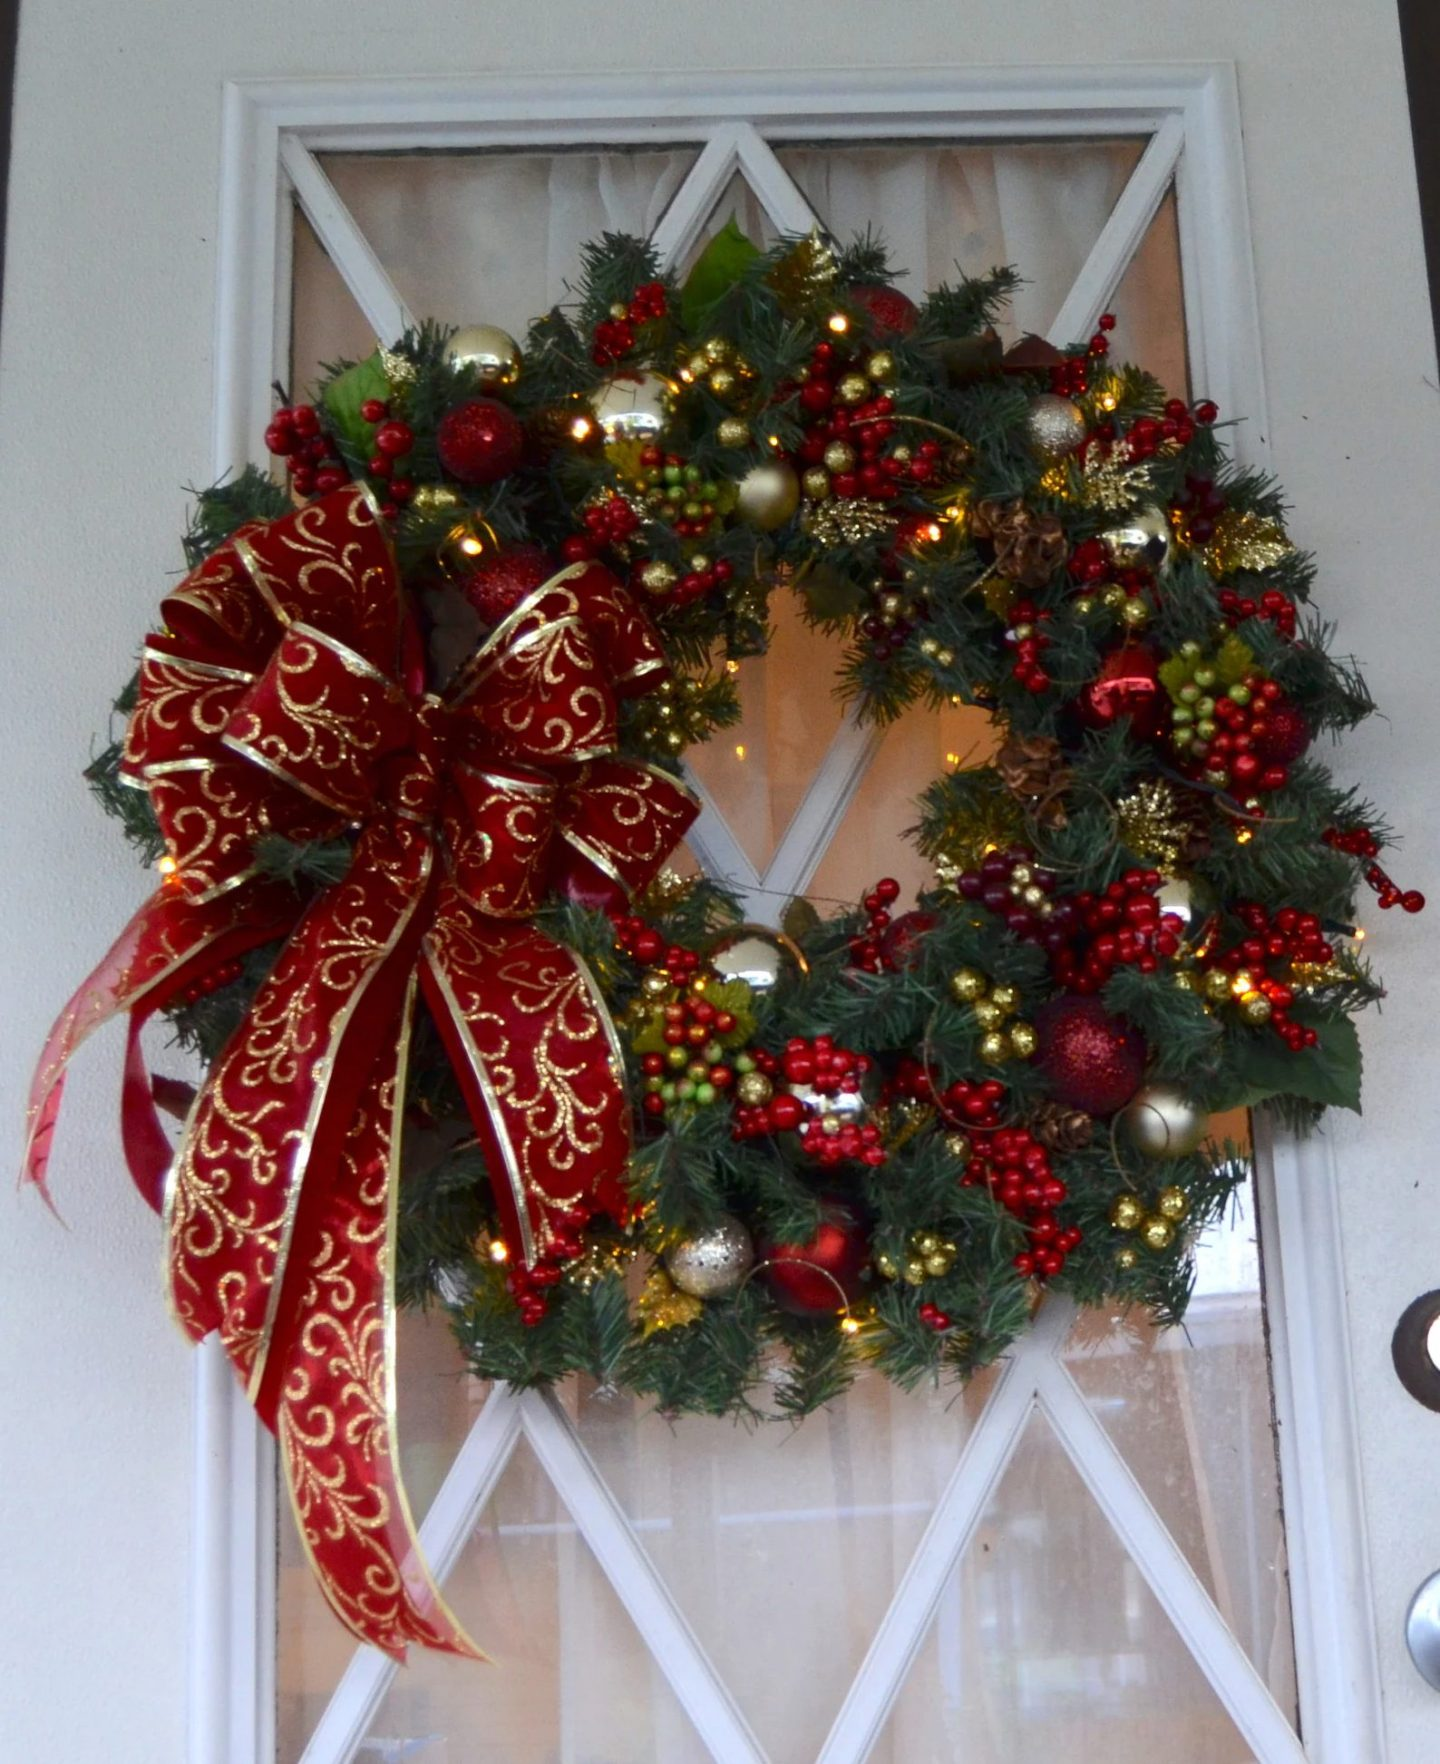 XL Christmas wreath with red bow